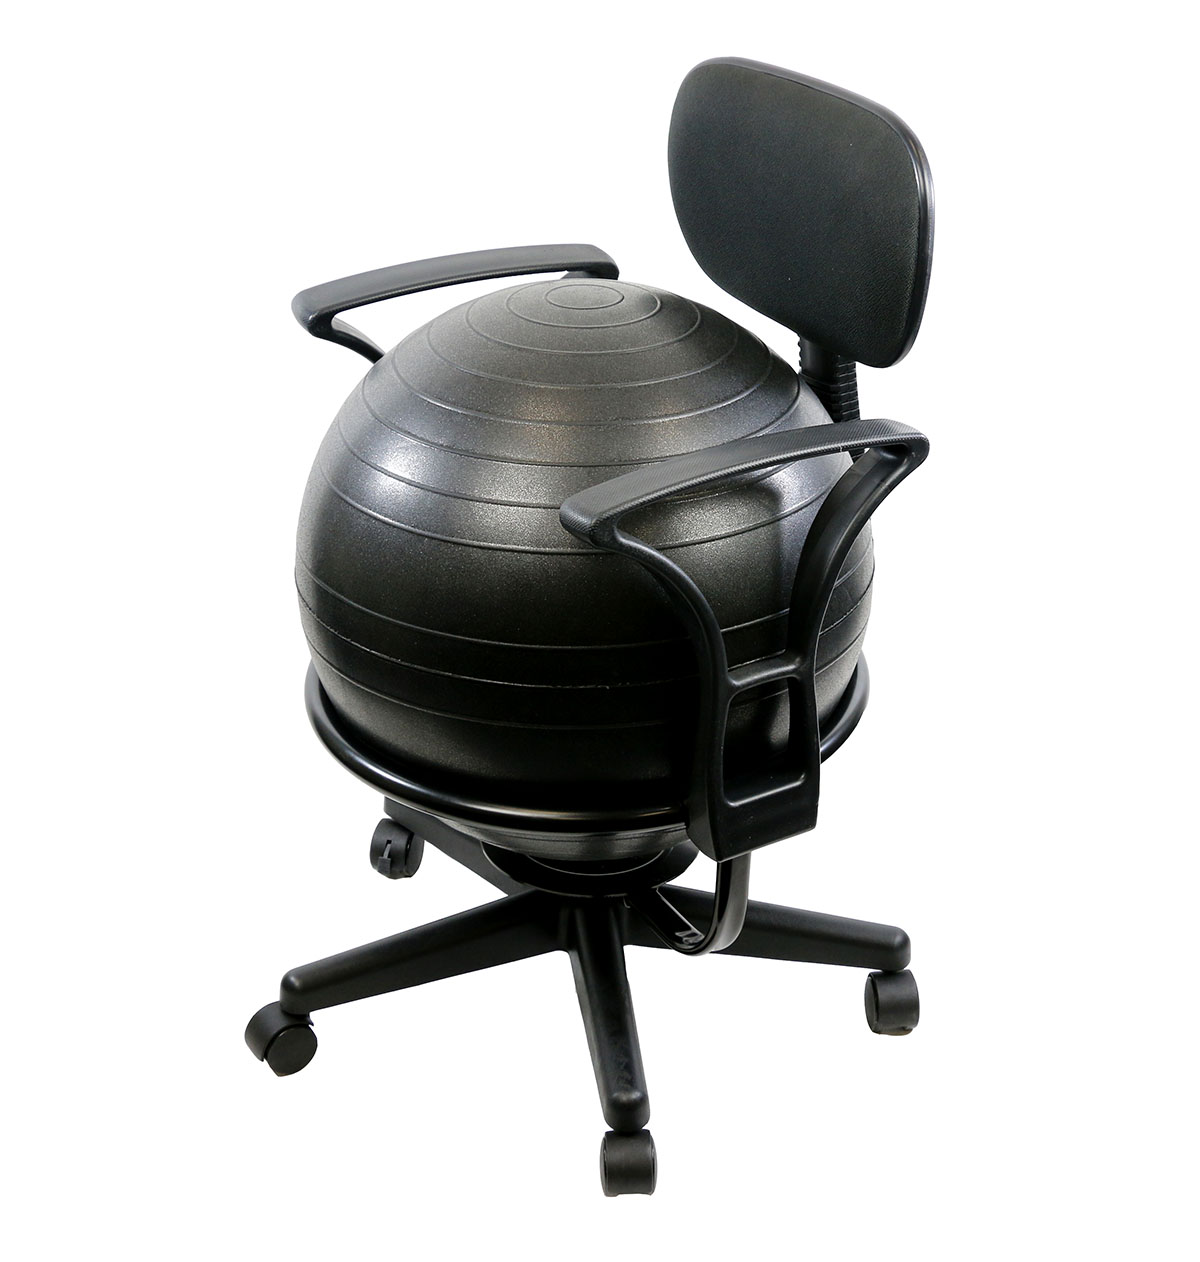 cando fitness body toning exercise seating fun workout ball office